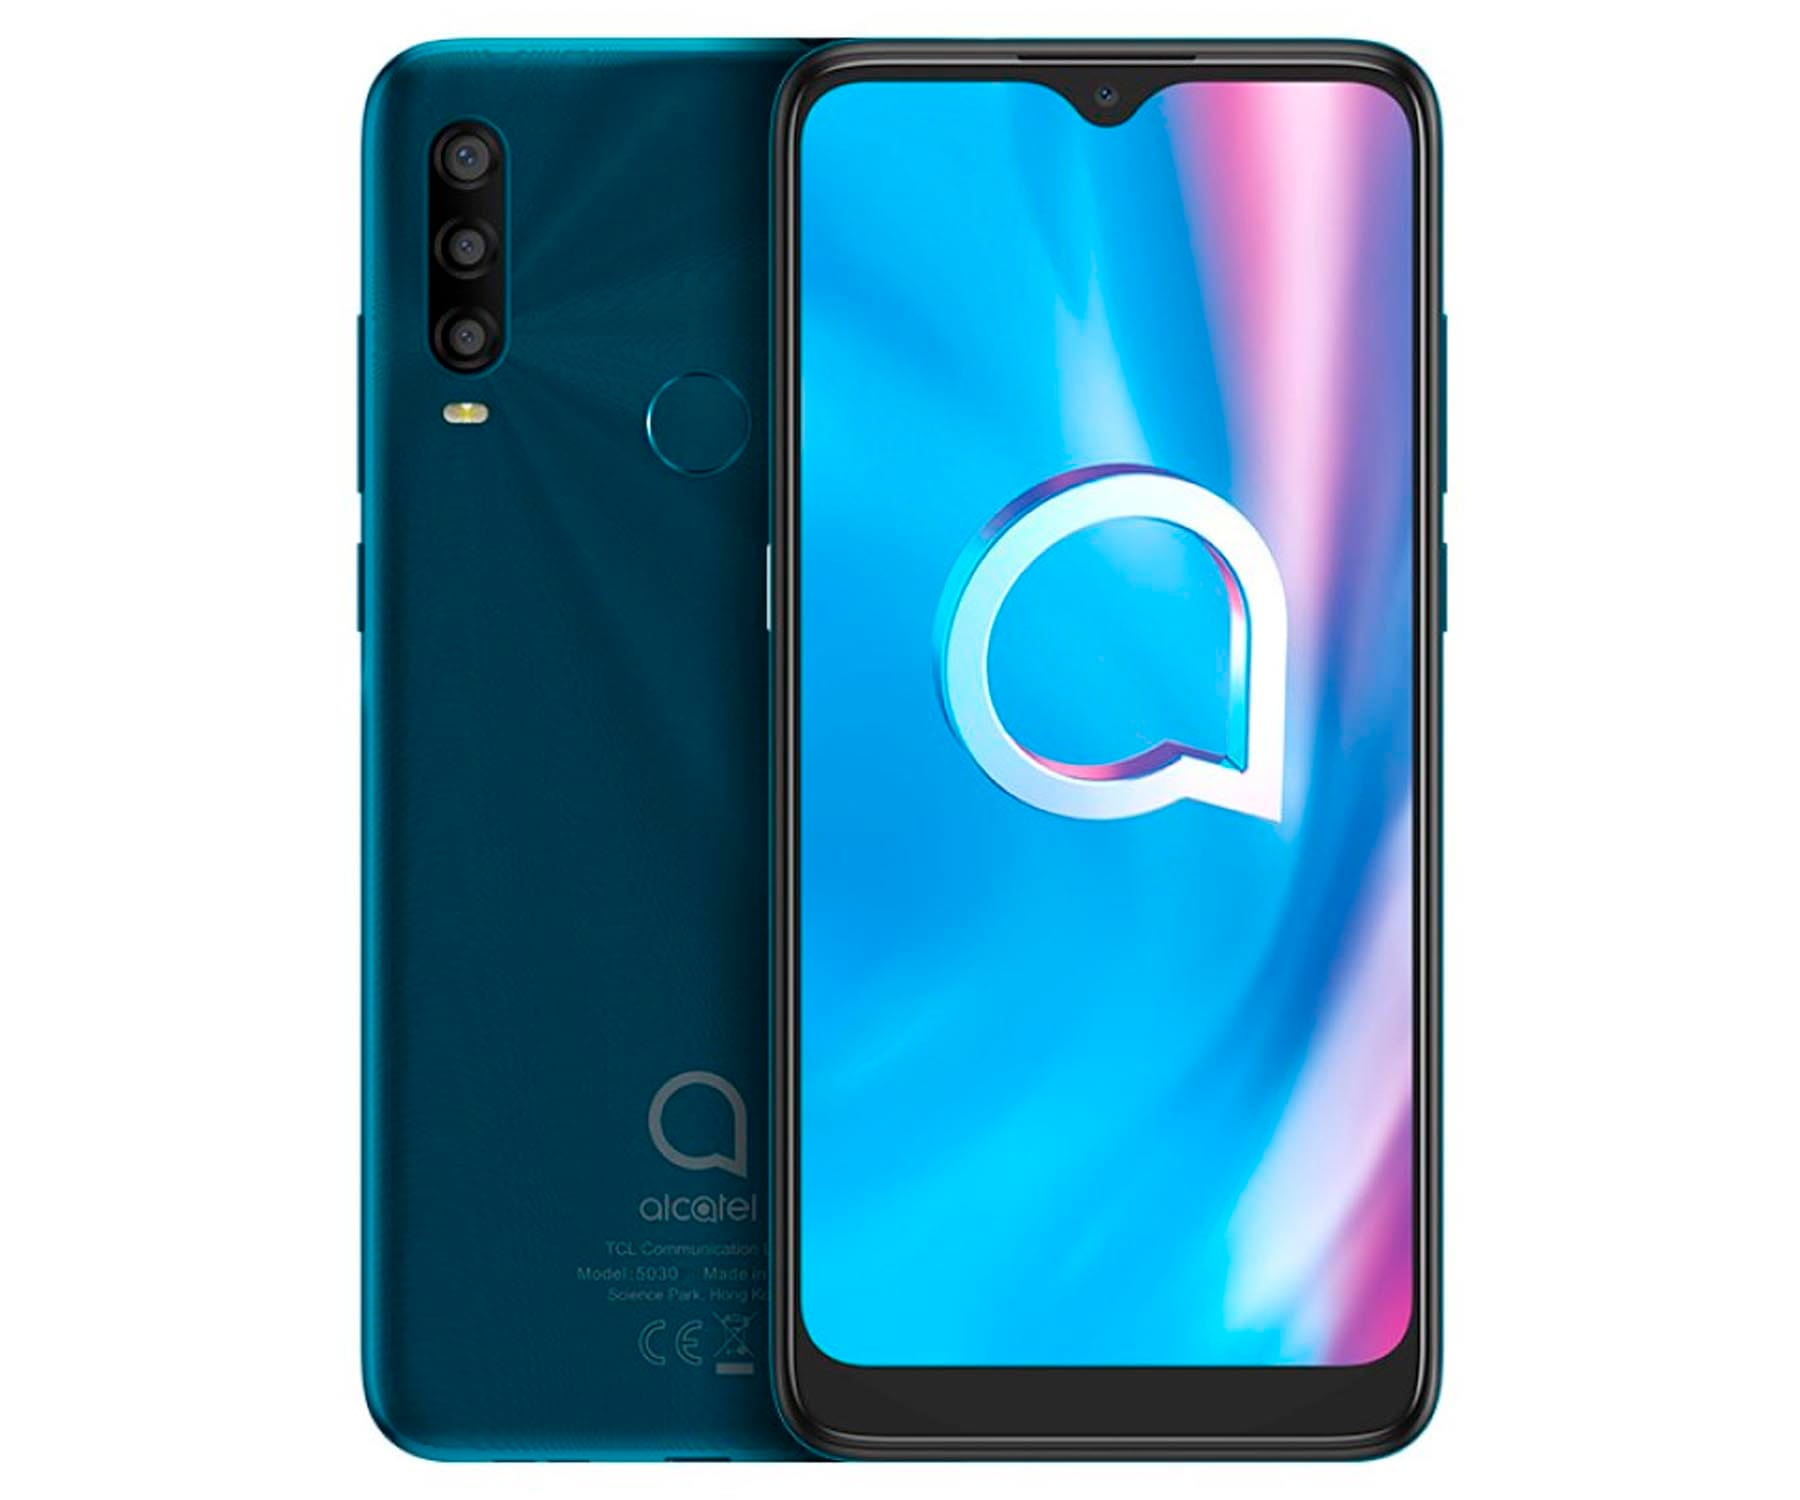 ALCATEL 1SE 5030F VERDE MÓVIL 4G DUAL SIM 6.22'' IPS HD+ OCTACORE 64GB 4GB RAM TRICAM 13MP SELFIES 5MP